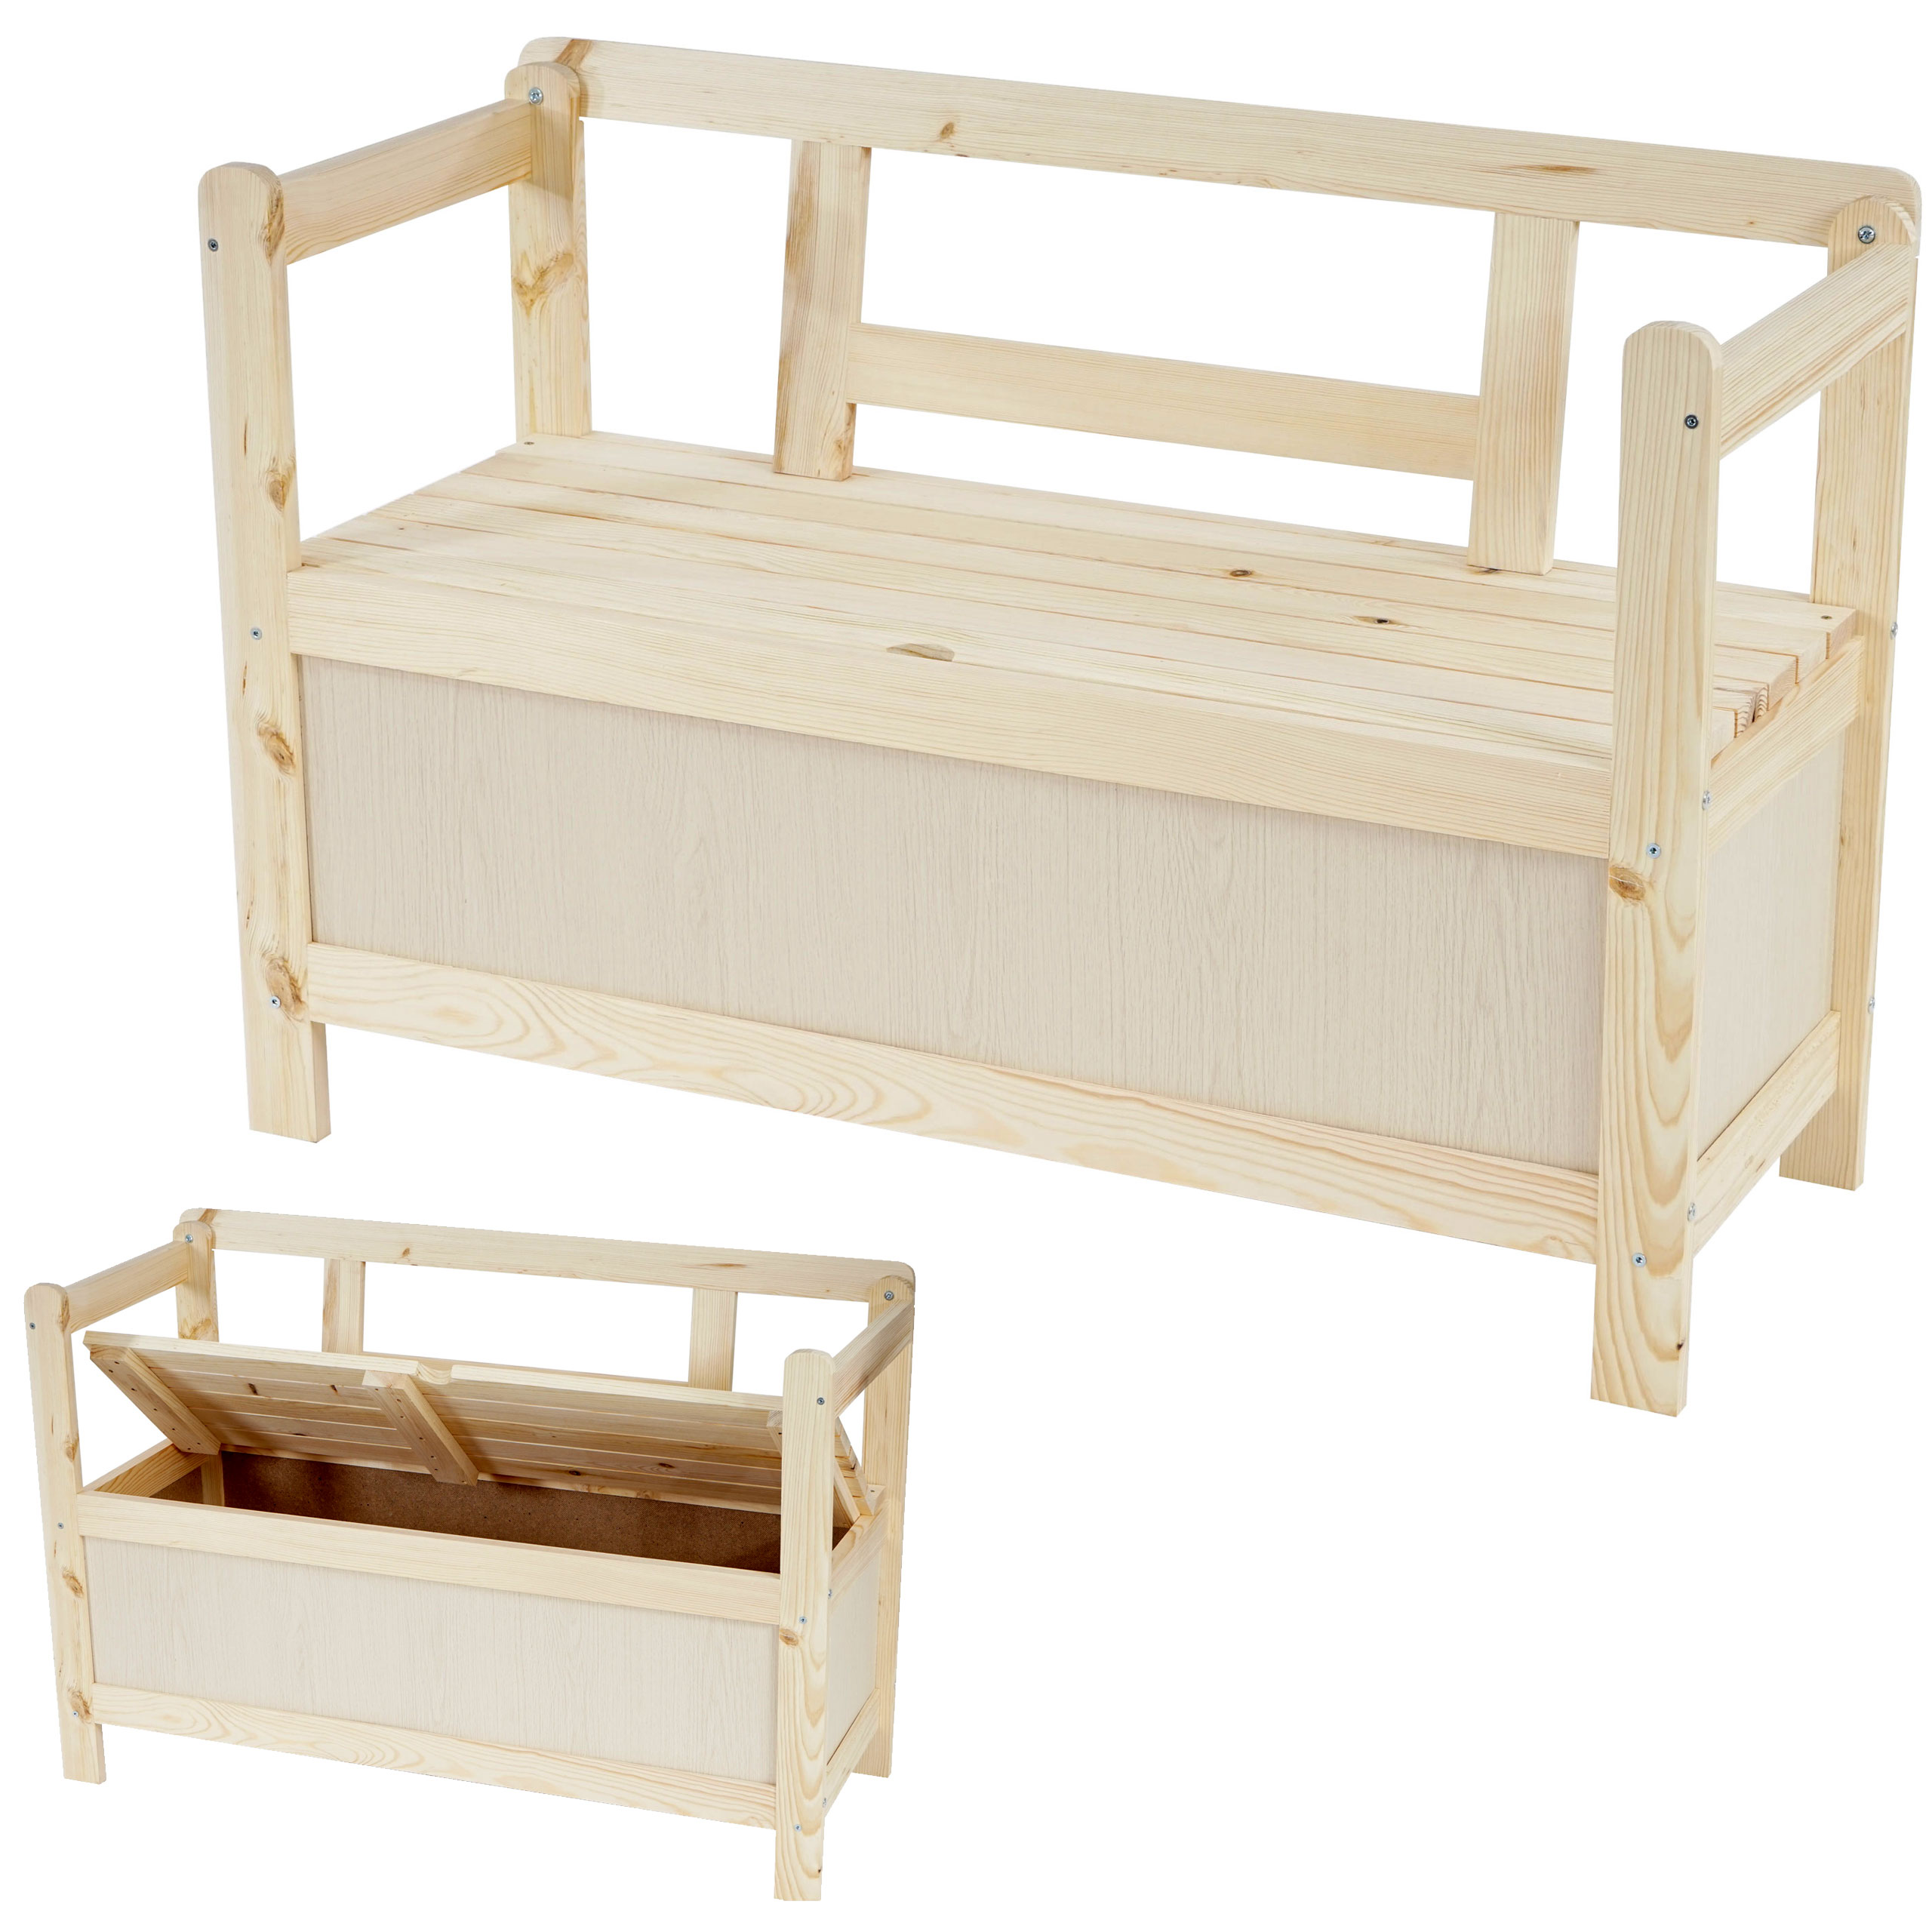 holzbank truhenbank gartenbank friesenbank kastenbank bremen 114 cm natur ebay. Black Bedroom Furniture Sets. Home Design Ideas